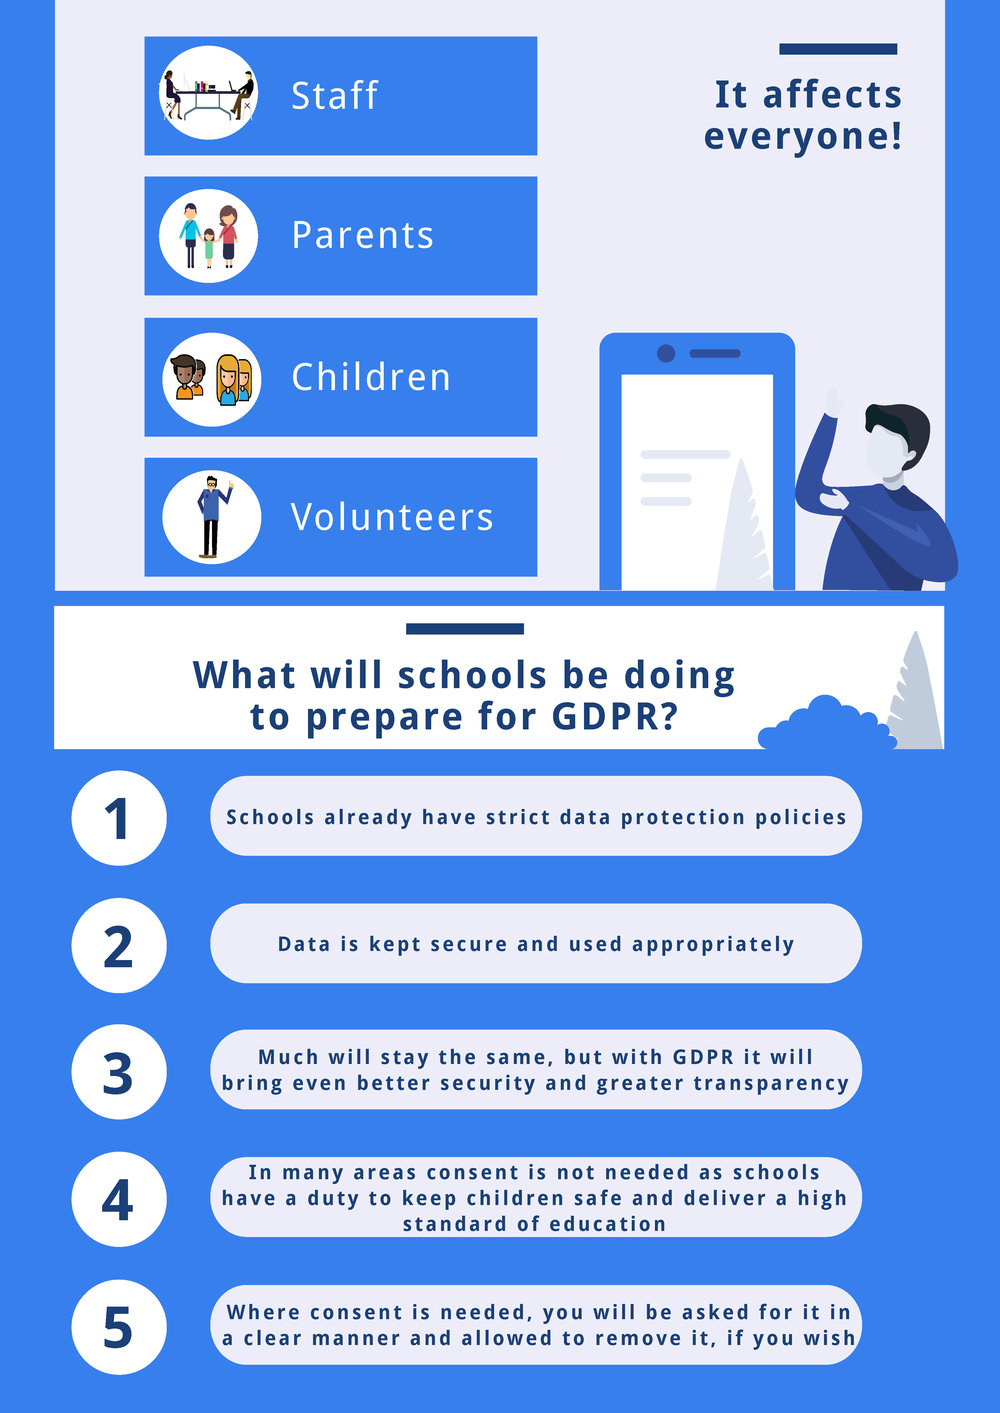 gdpris-gdpr-infographic-parents[1]-2.jpg